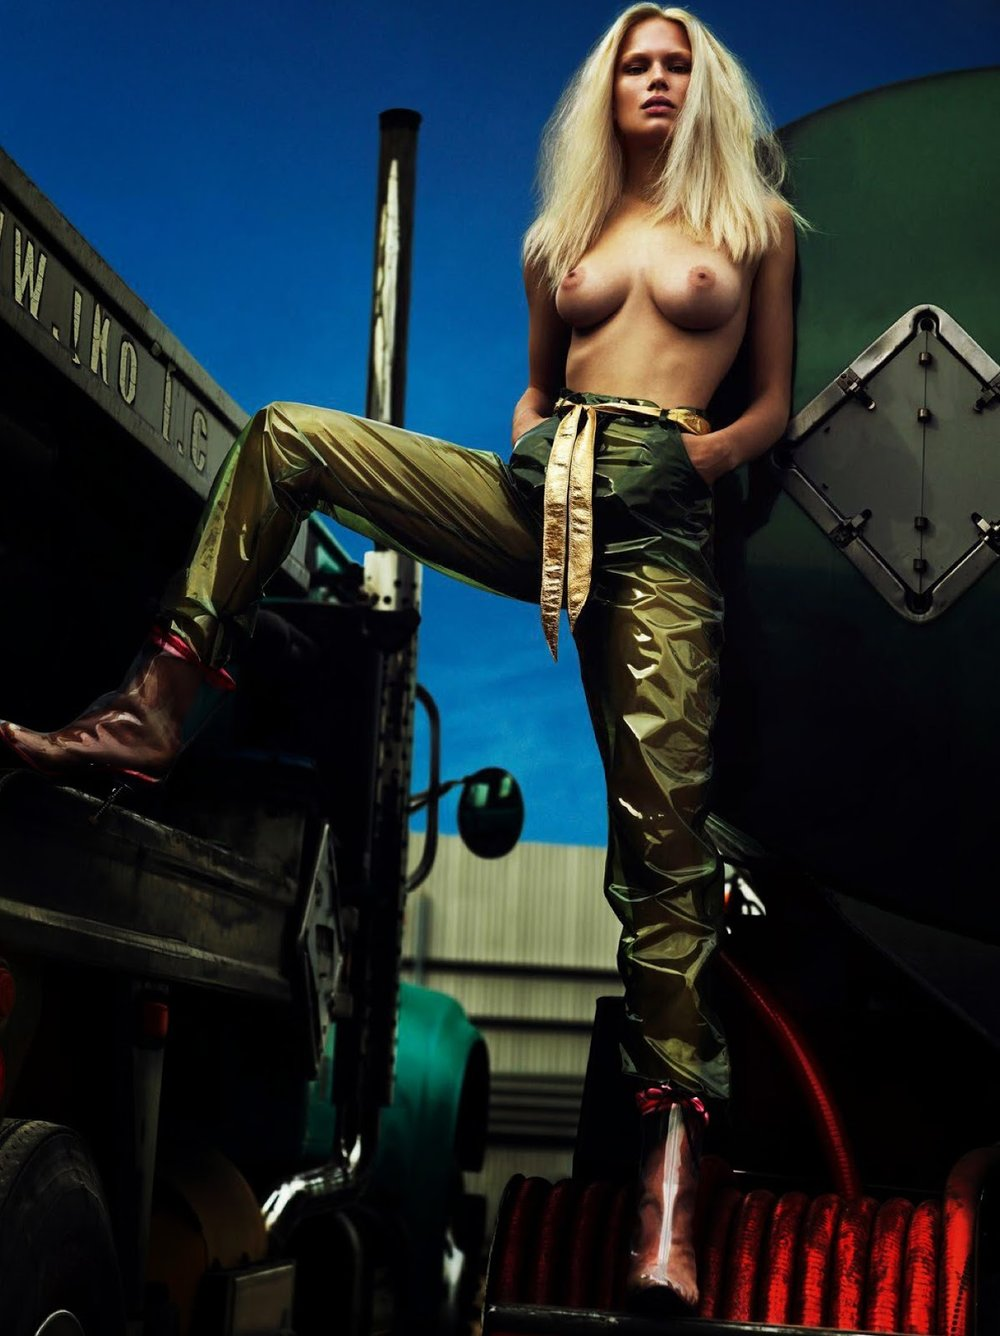 anna-ewers-by-mert-alas-marcus-piggott-for-vogue-paris-august-2014-6.jpg